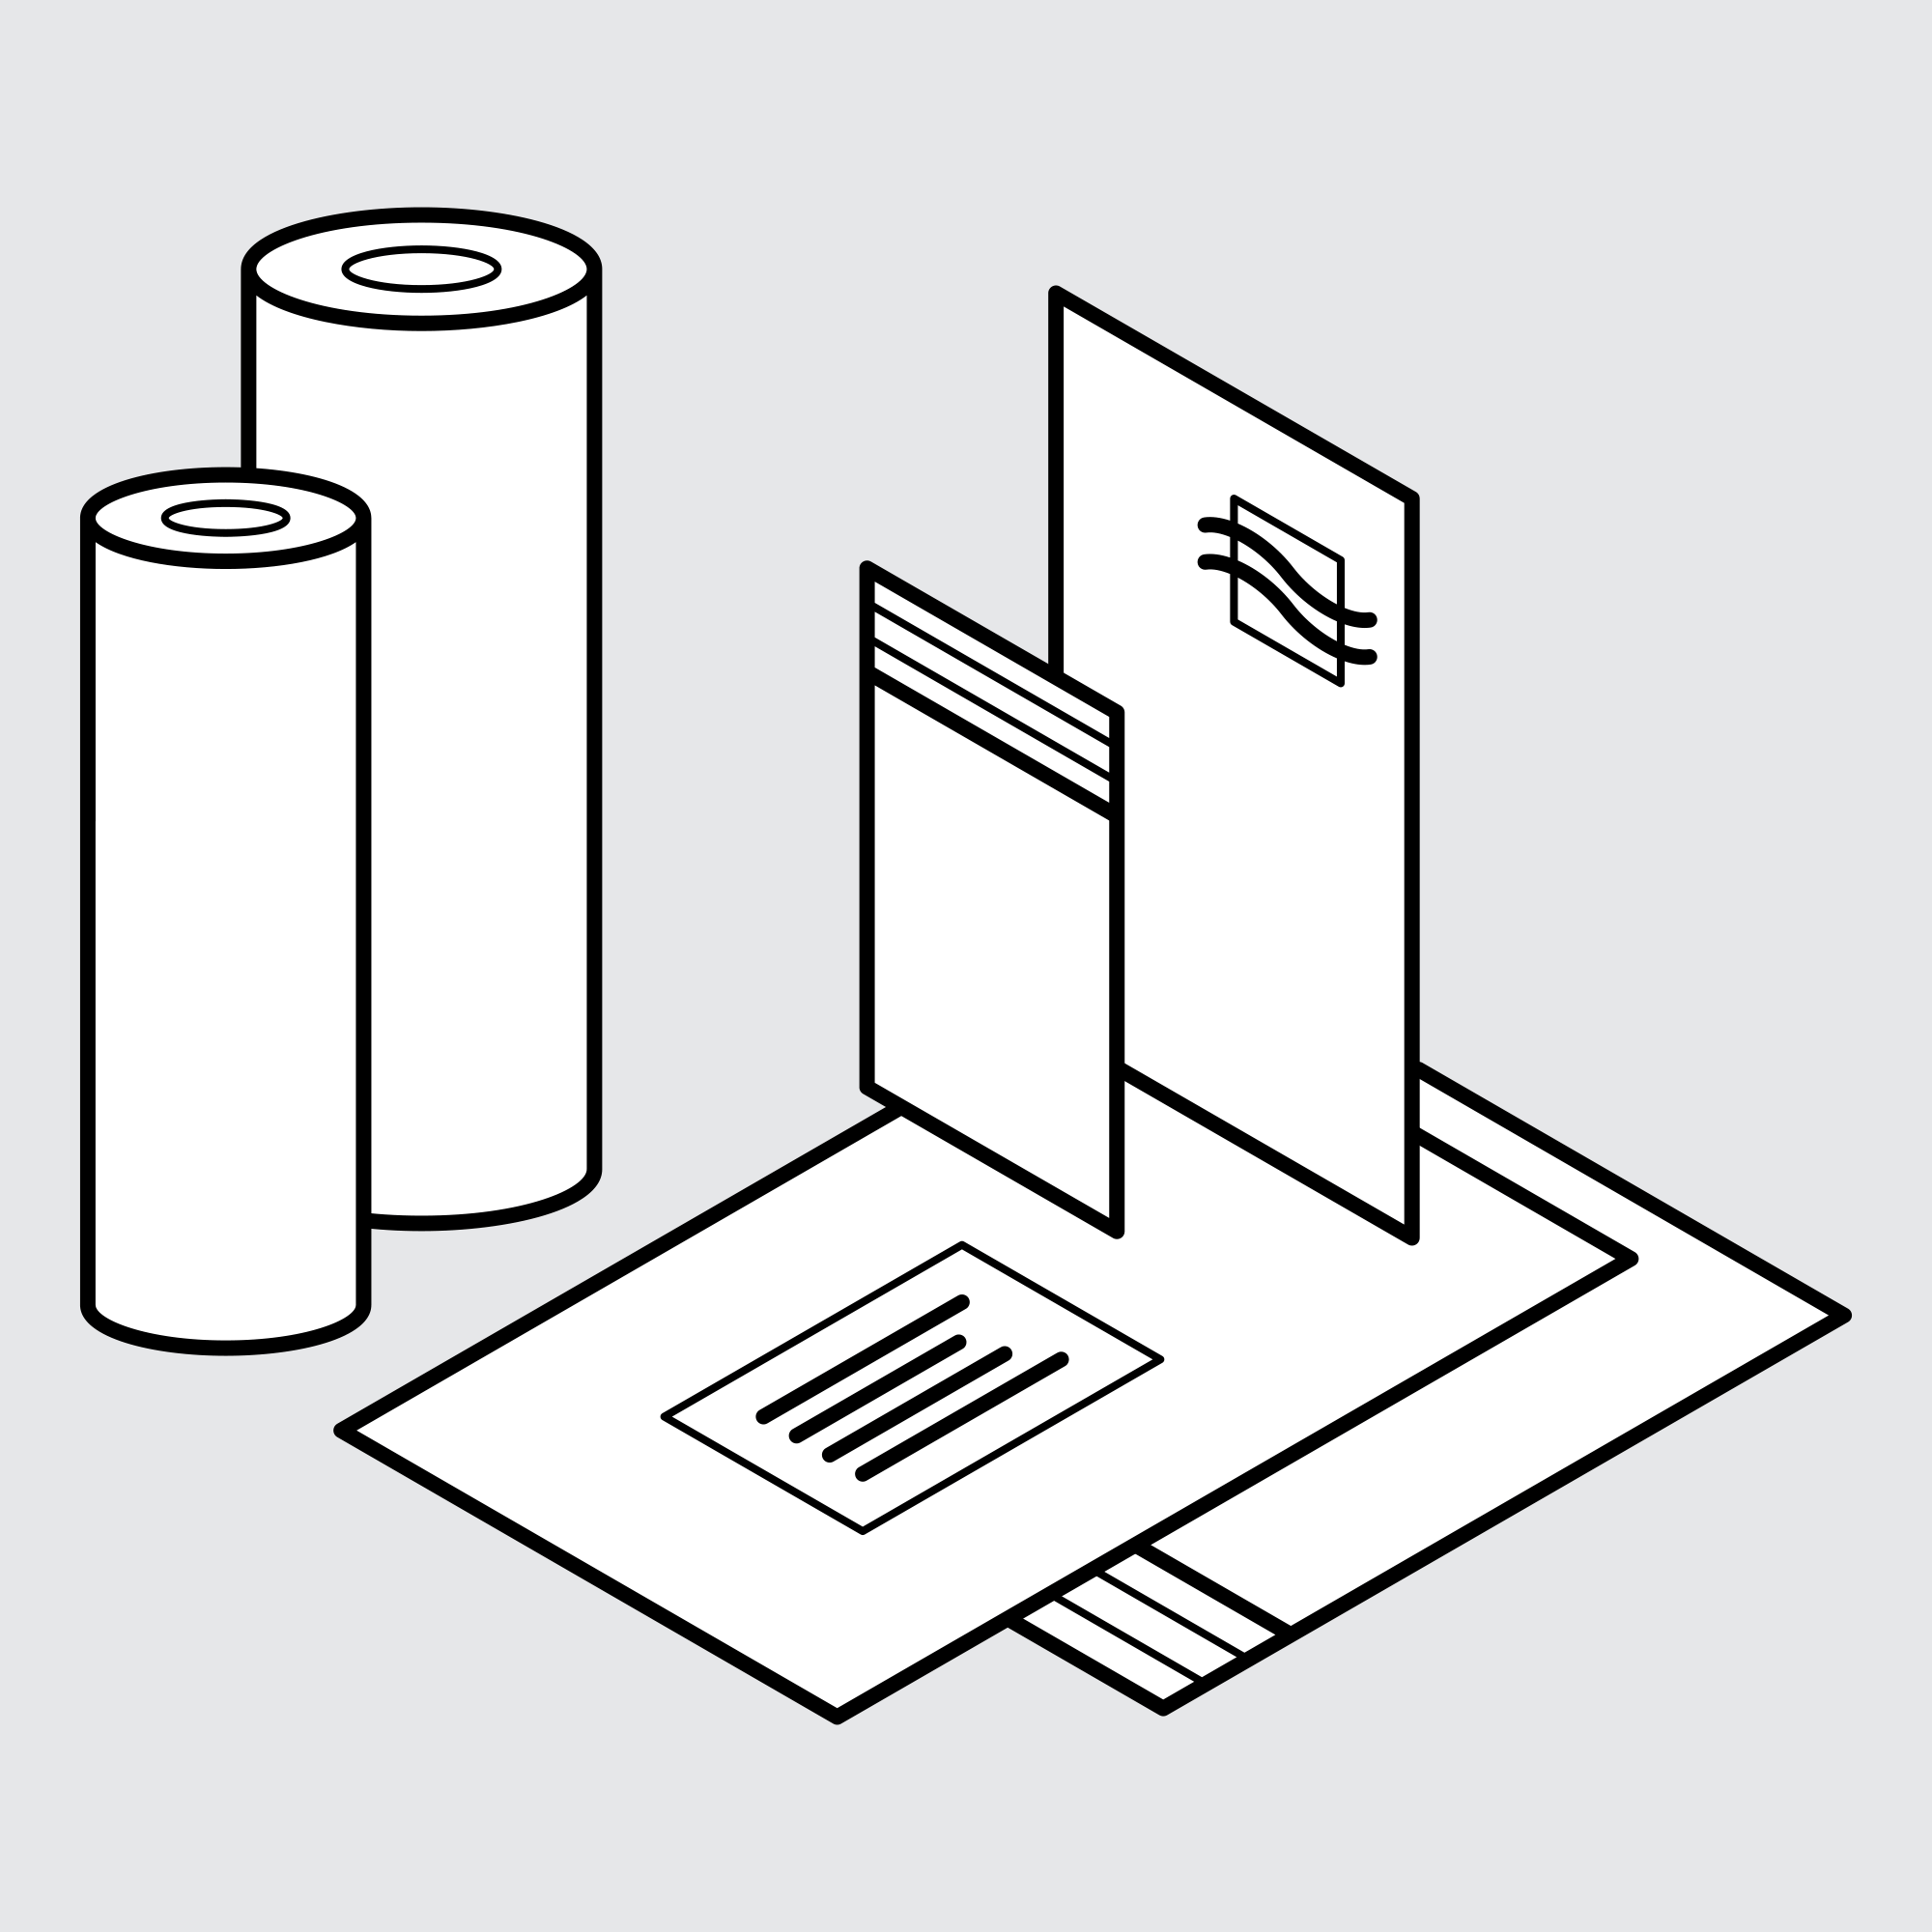 Freight and Packaging – Drawing of Sample Products